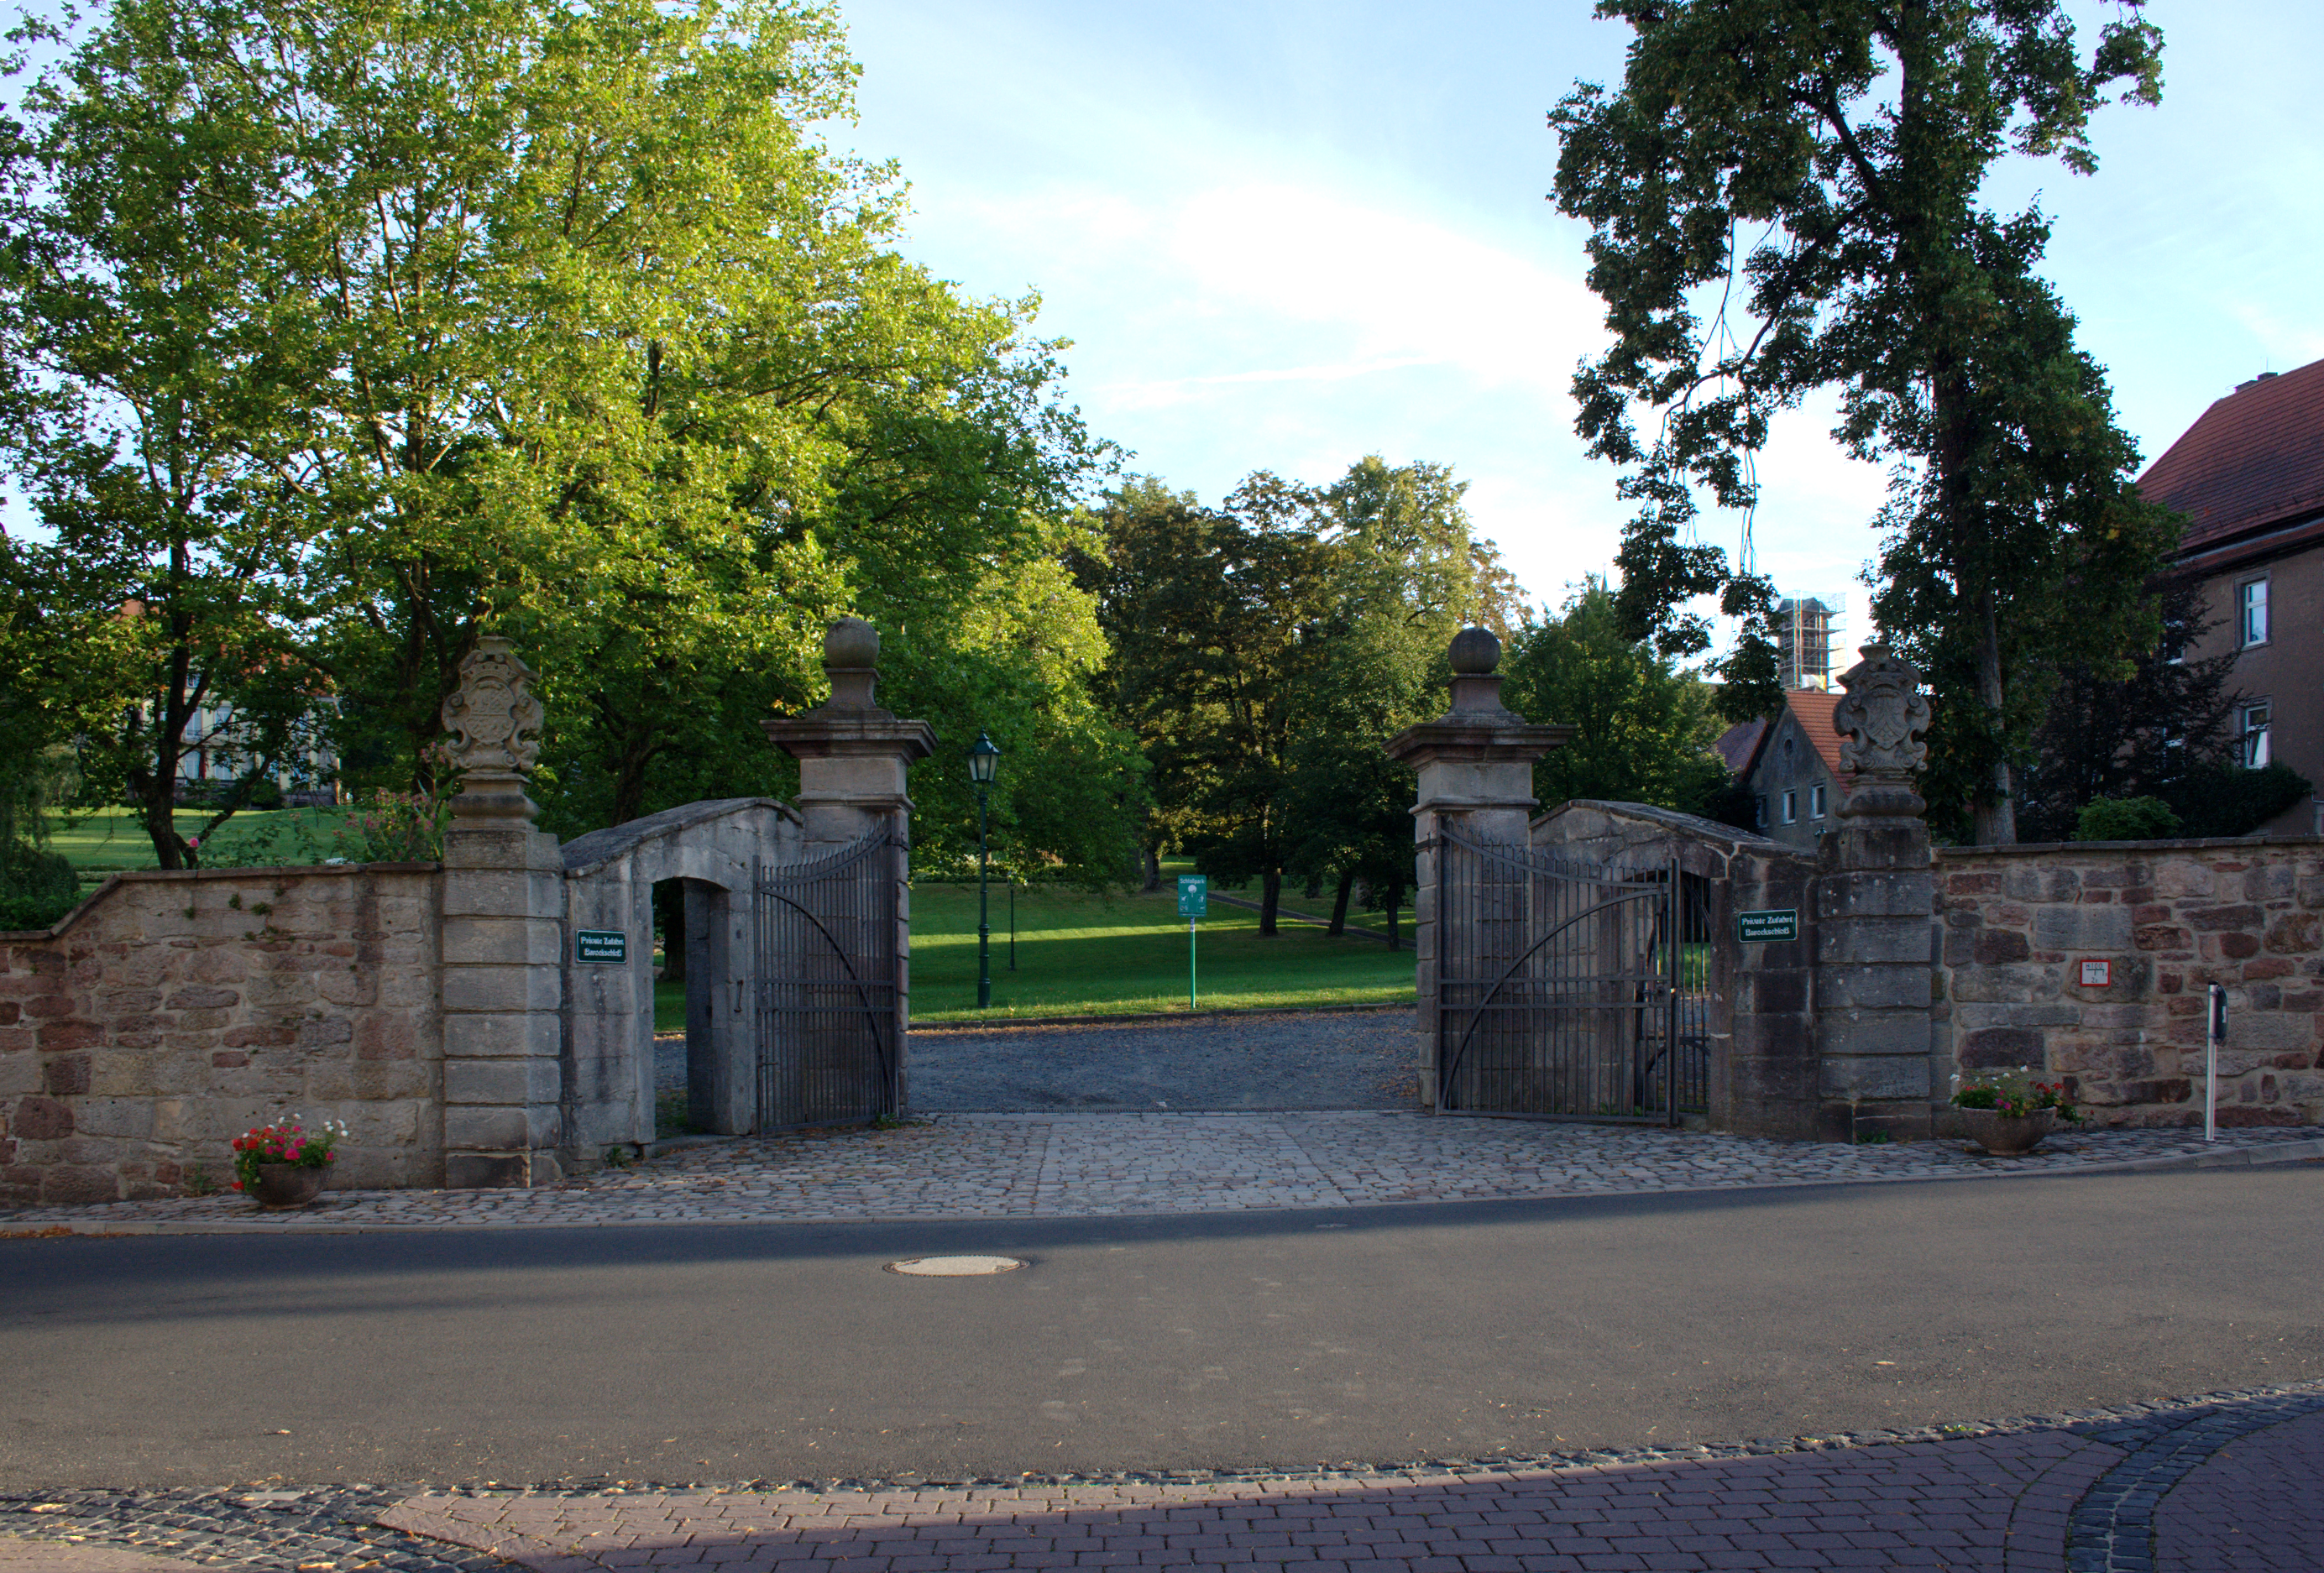 File:Gersfeld Gersfeld Schloss Park Gate f.png - Wikimedia Commons for Park Tree Png  76uhy